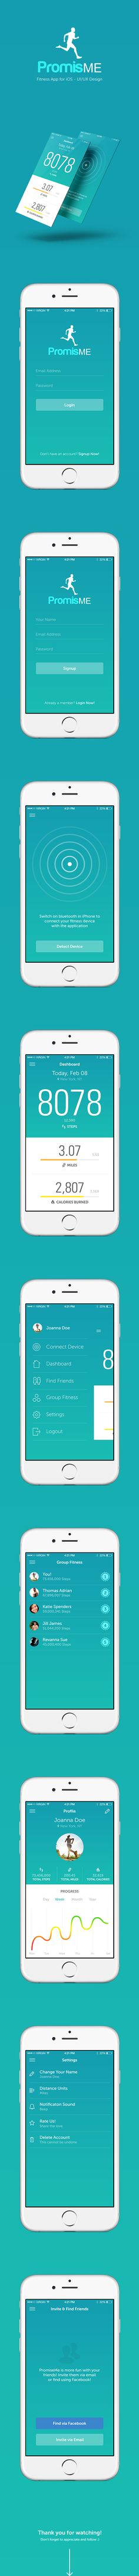 PromiseMe | Fitness App UI Design on Behance